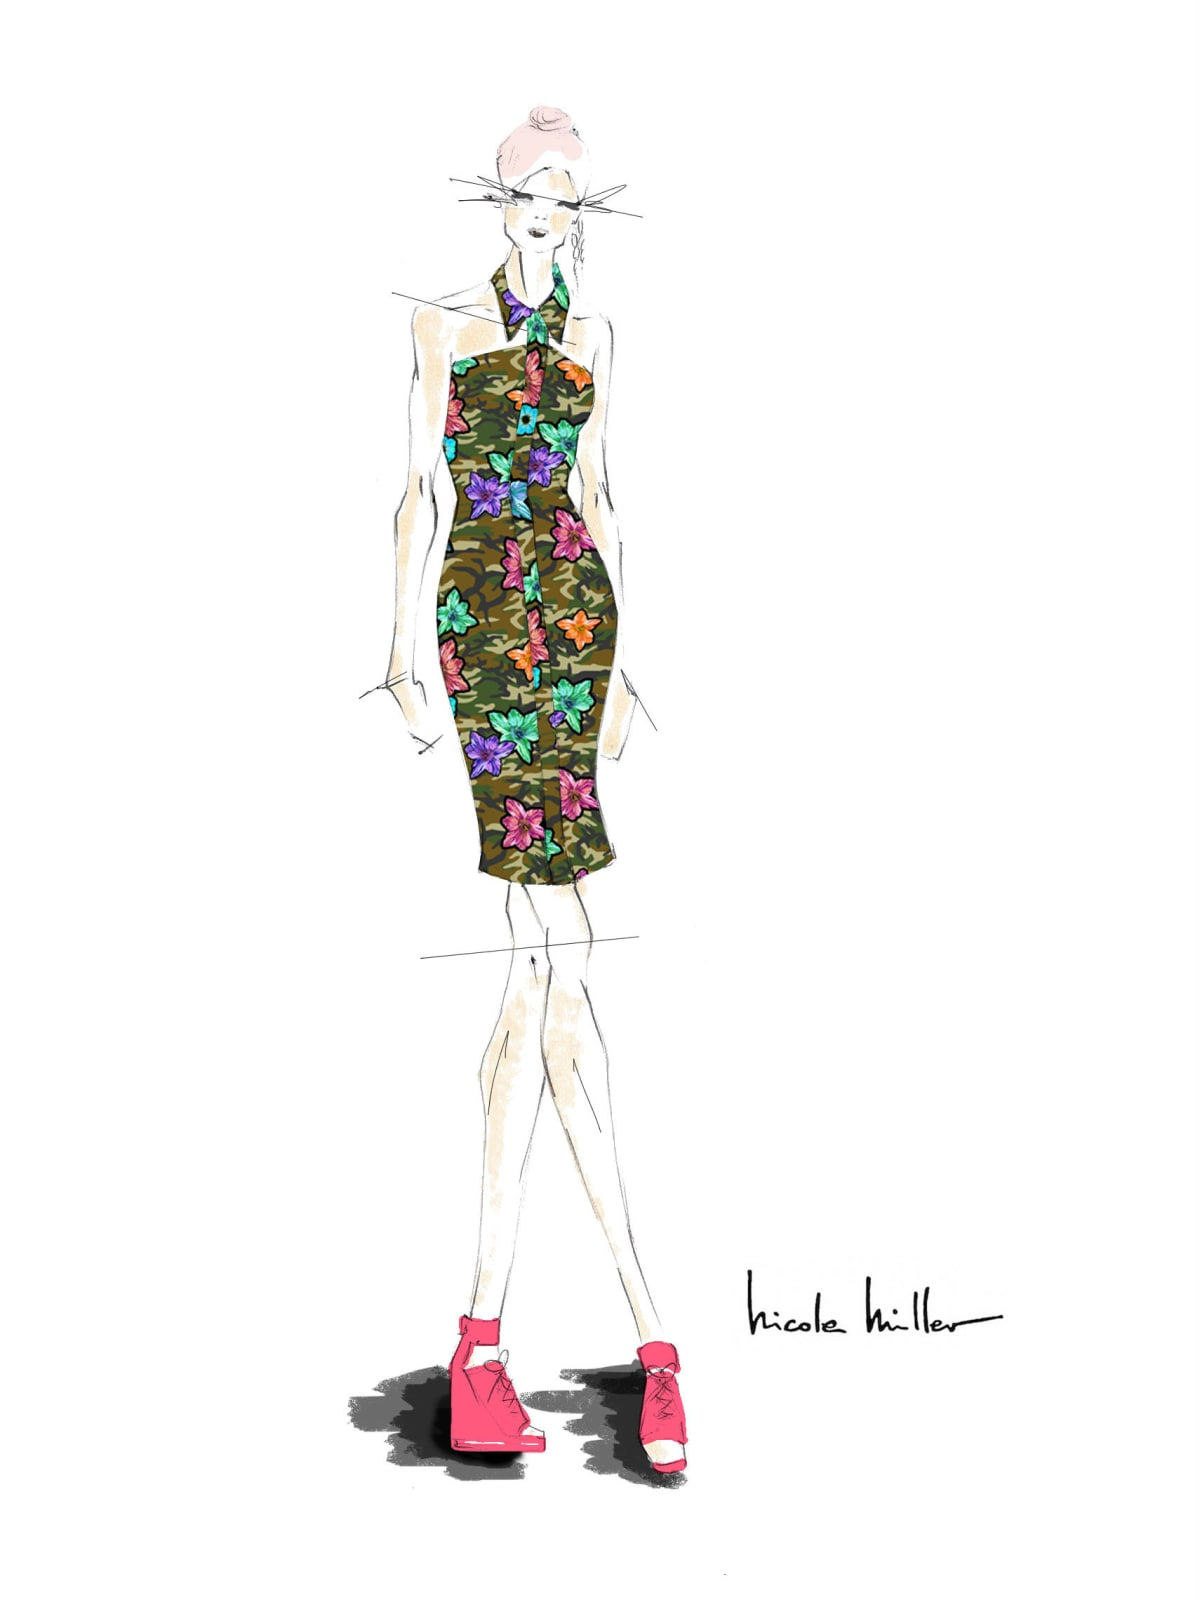 Nicole Miller inspiration sketch New York Fashion Week spring 2015